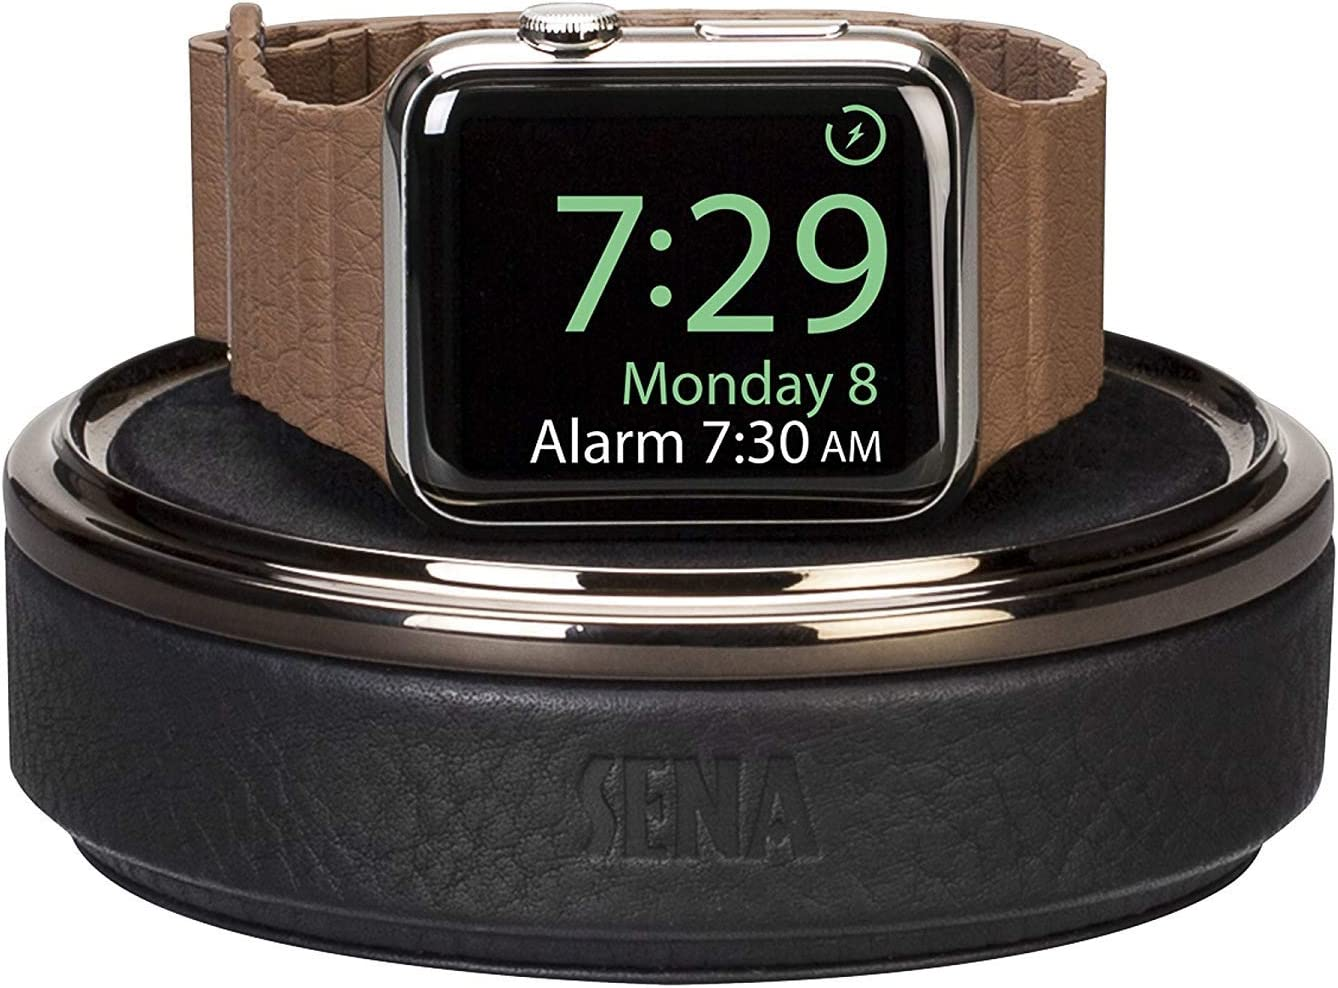 Sena, Leather Watch Case for Apple Watch (Black)